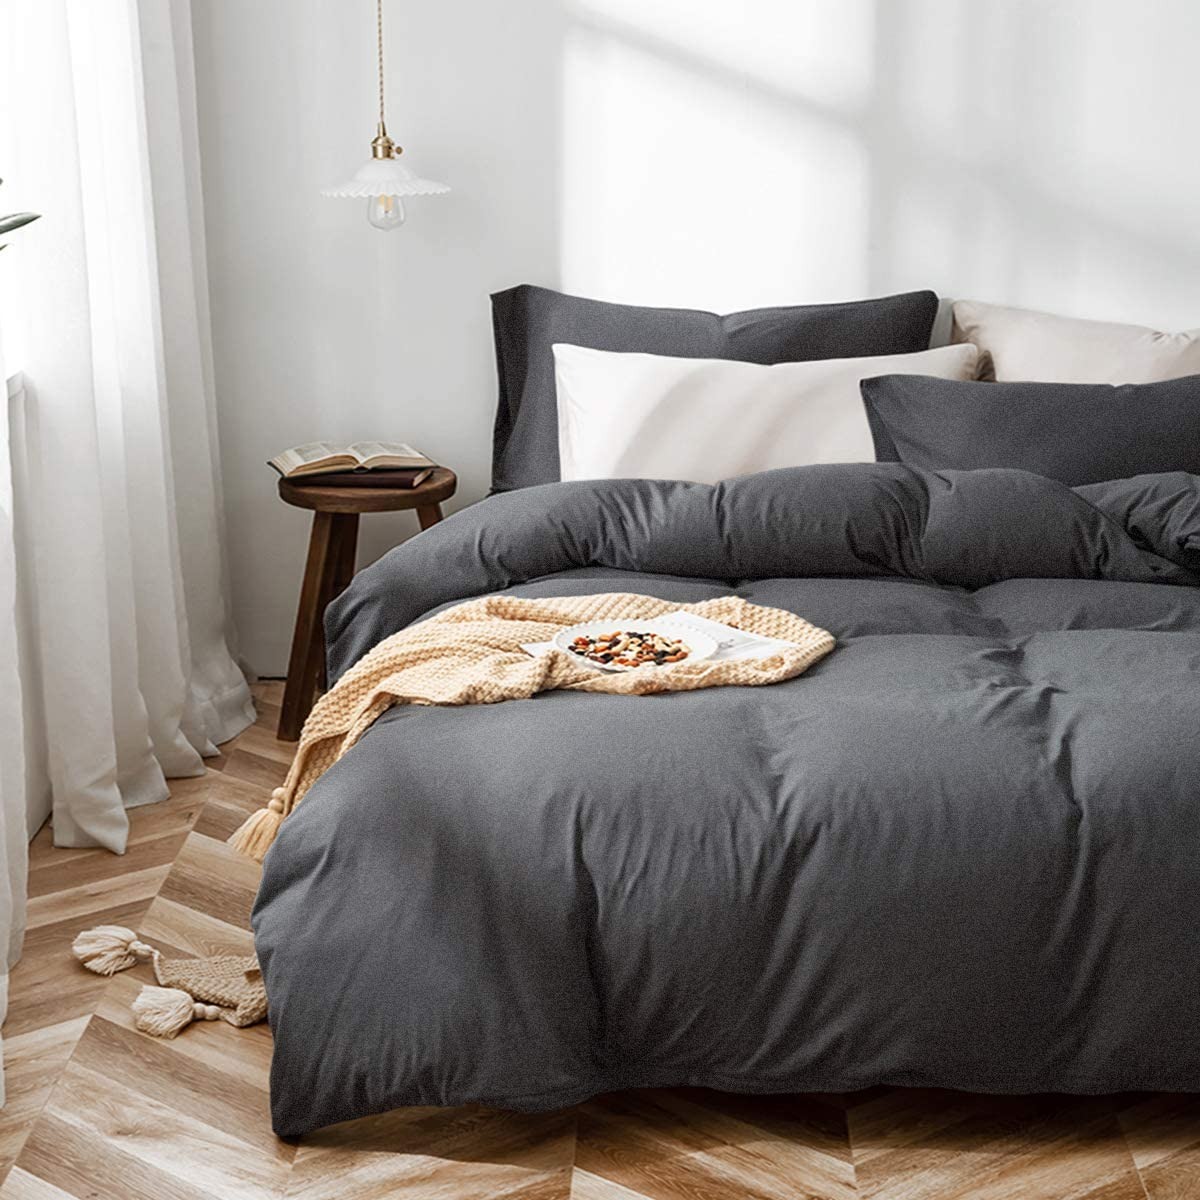 """Dark Gray Duvet Cover Set 100% Washed Cotton 3 Pieces 1 Jersey Knit Duvet Cover 90""""x90 with Zipper Closure and 2 Pillowcases Simple Solid Color Design Ultra Soft and Breathable(Dark Gray,Full/Queen)"""